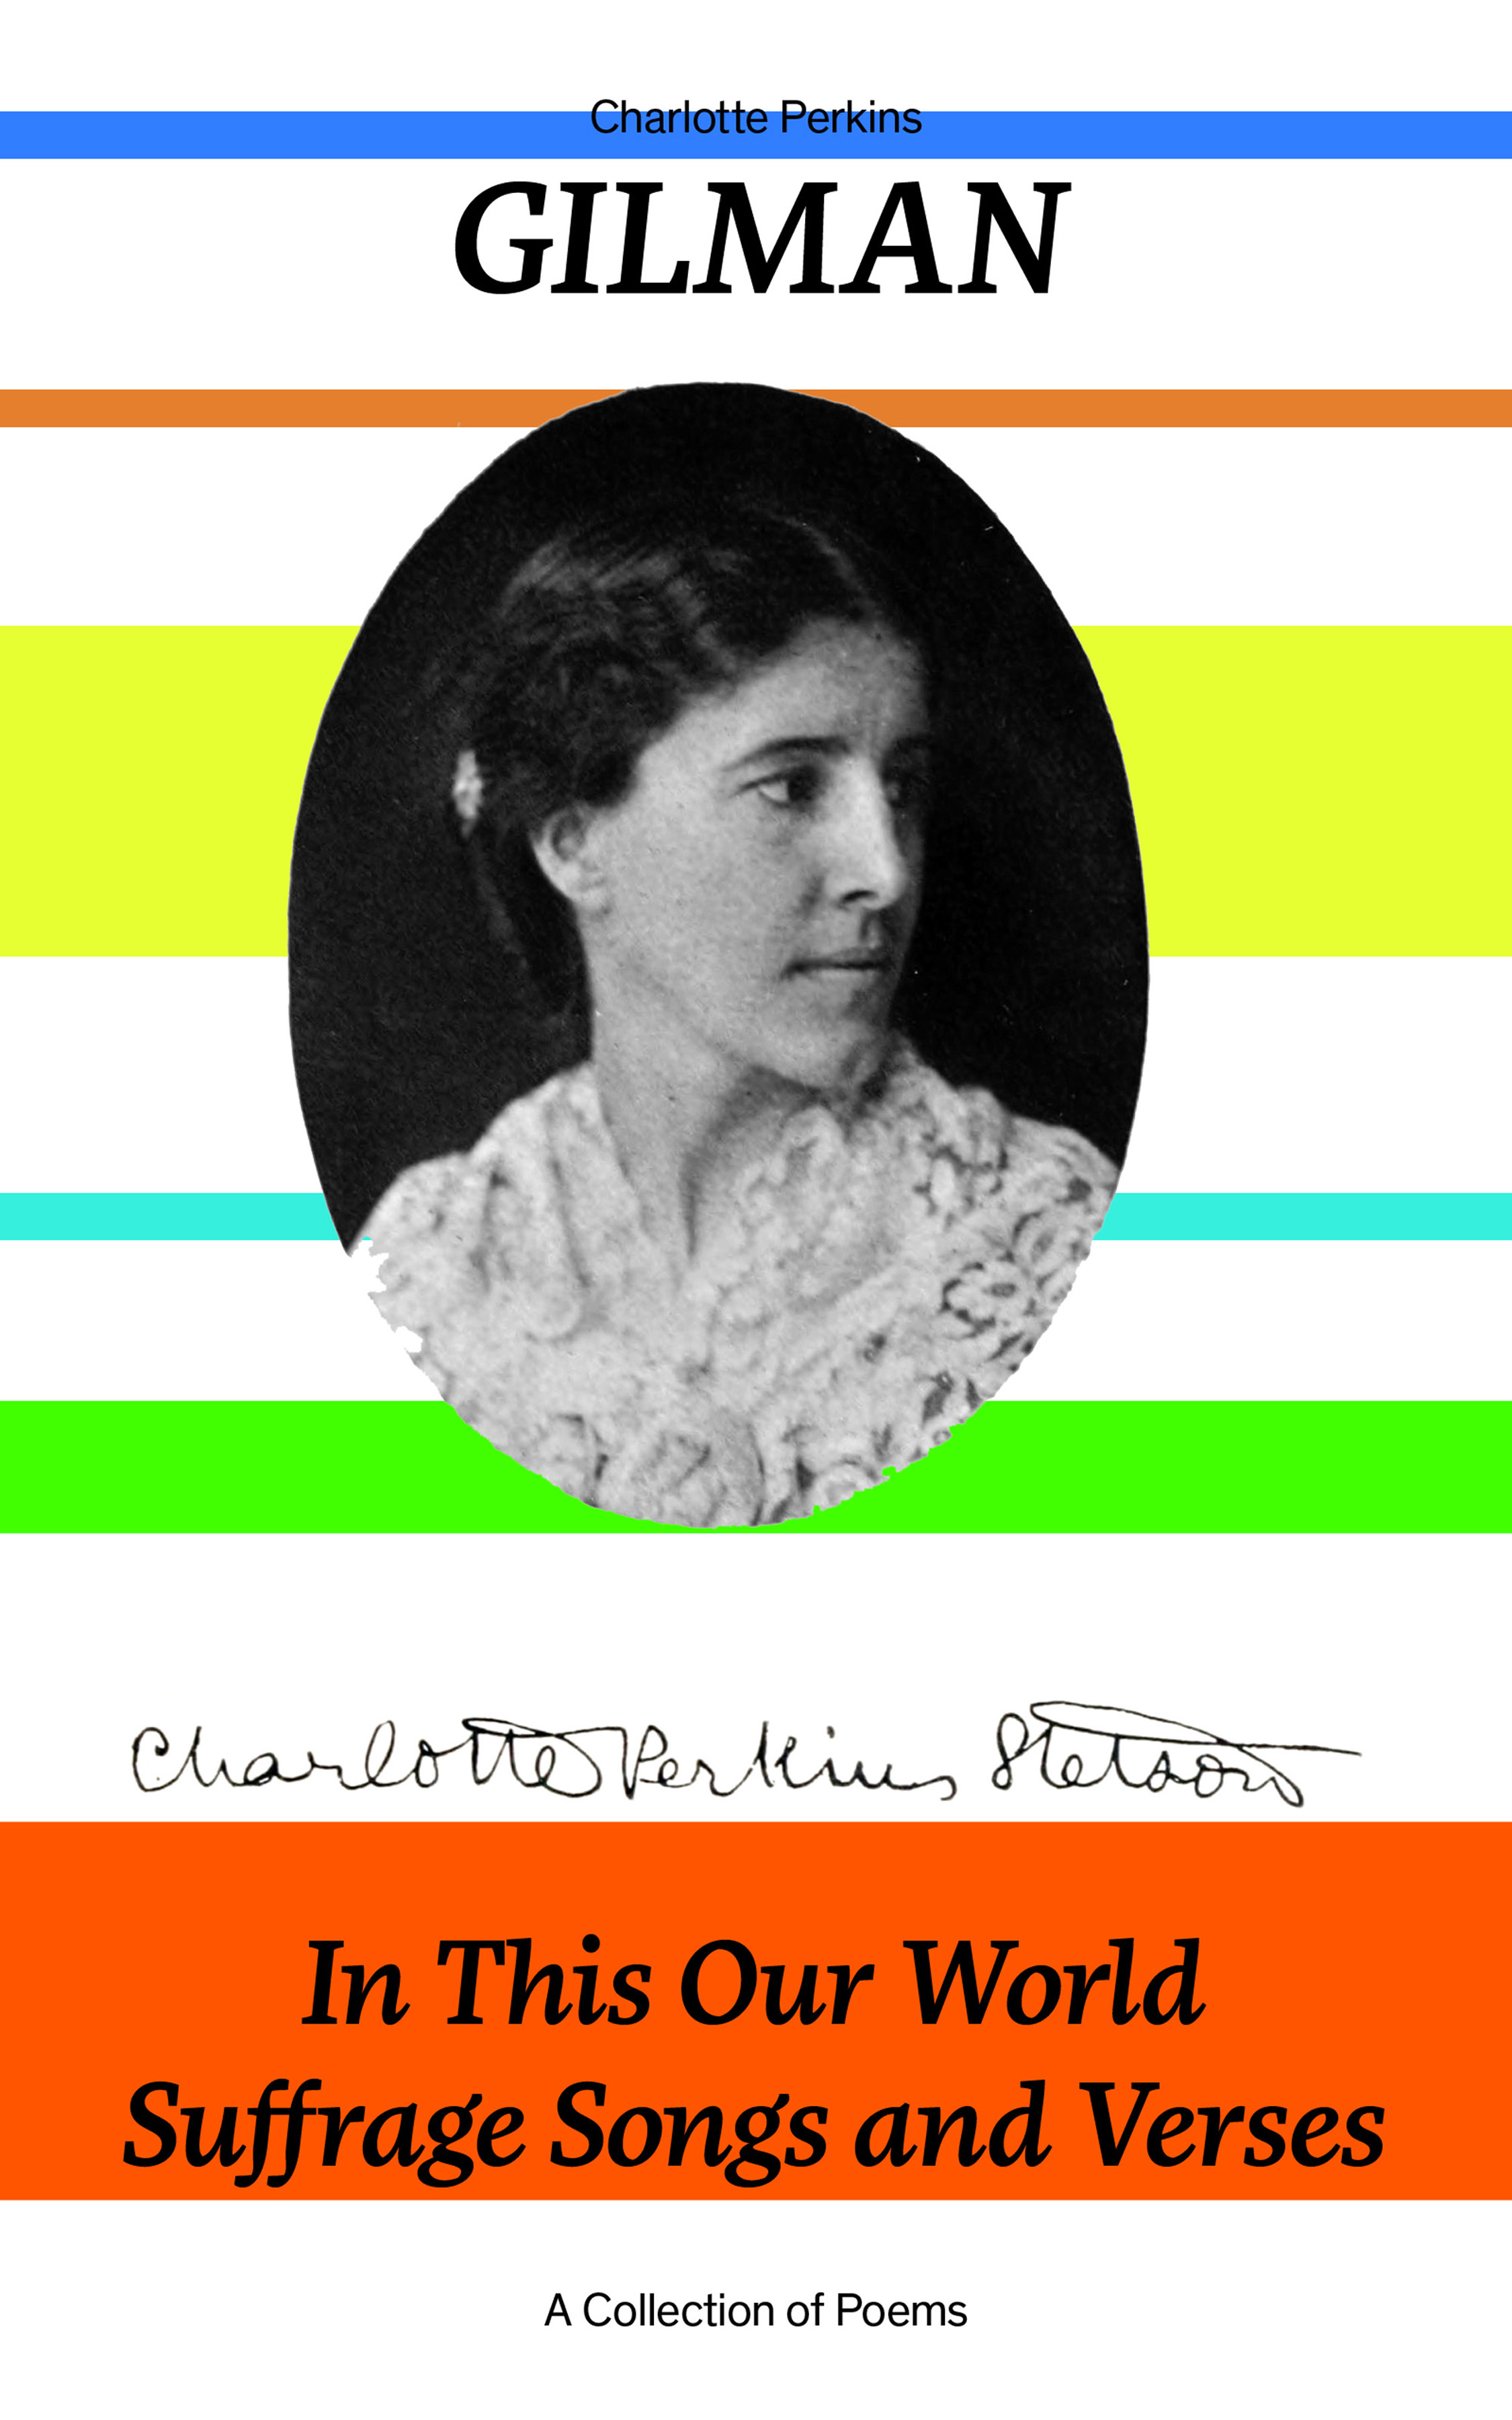 Charlotte Perkins Gilman In This Our World, Suffrage Songs and Verses - A Collection of Poems w m thackeray christmas books mrs perkins s ball our street dr birch